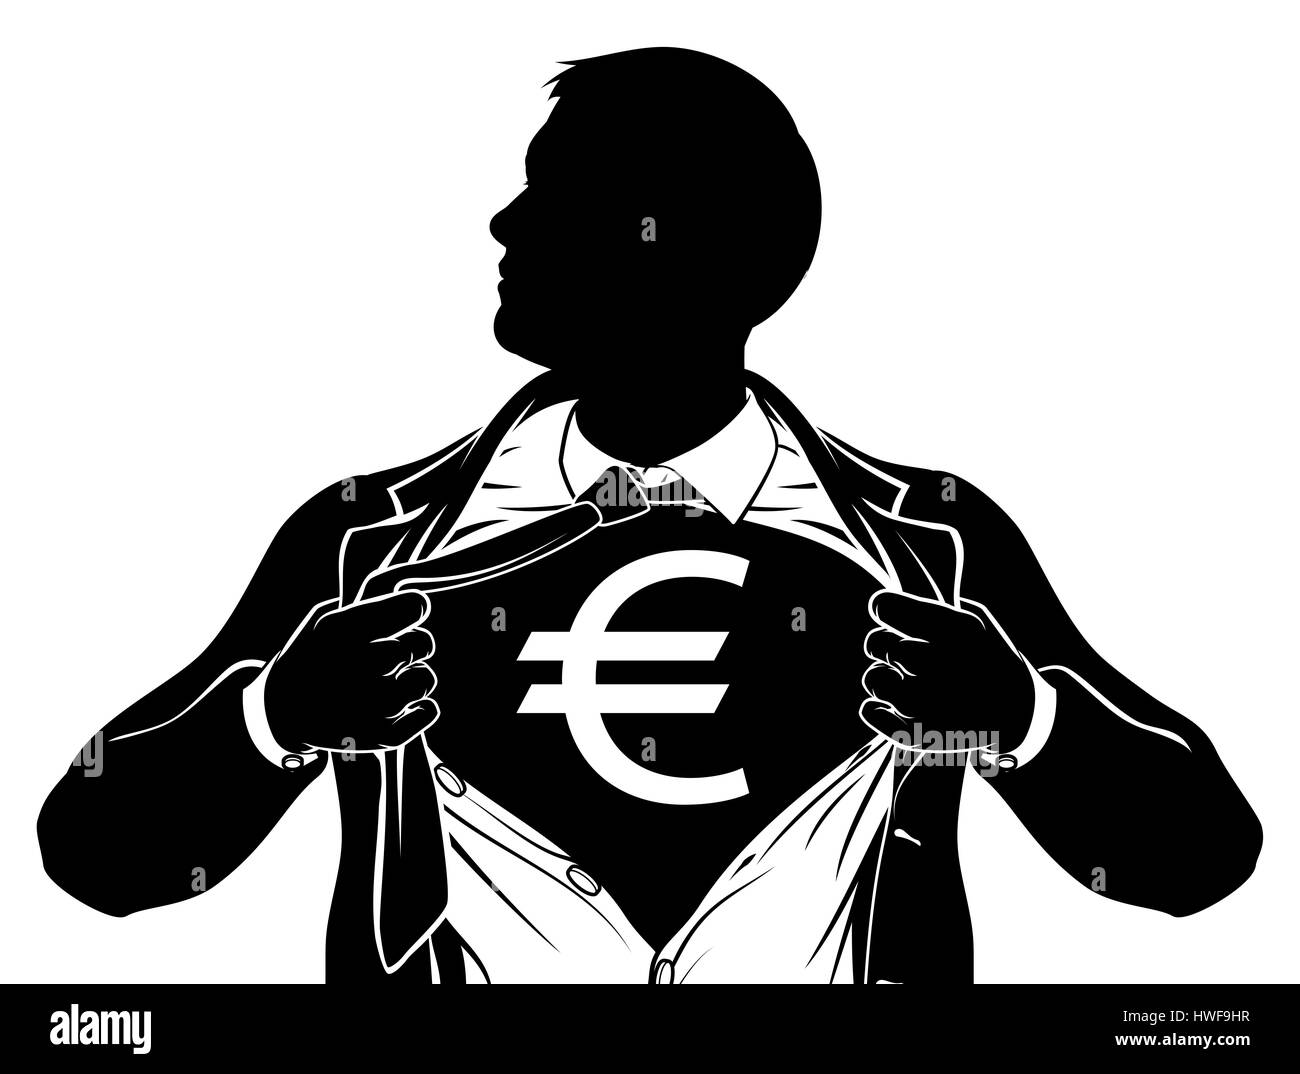 a superhero business man tearing his shirt showing the chest of his